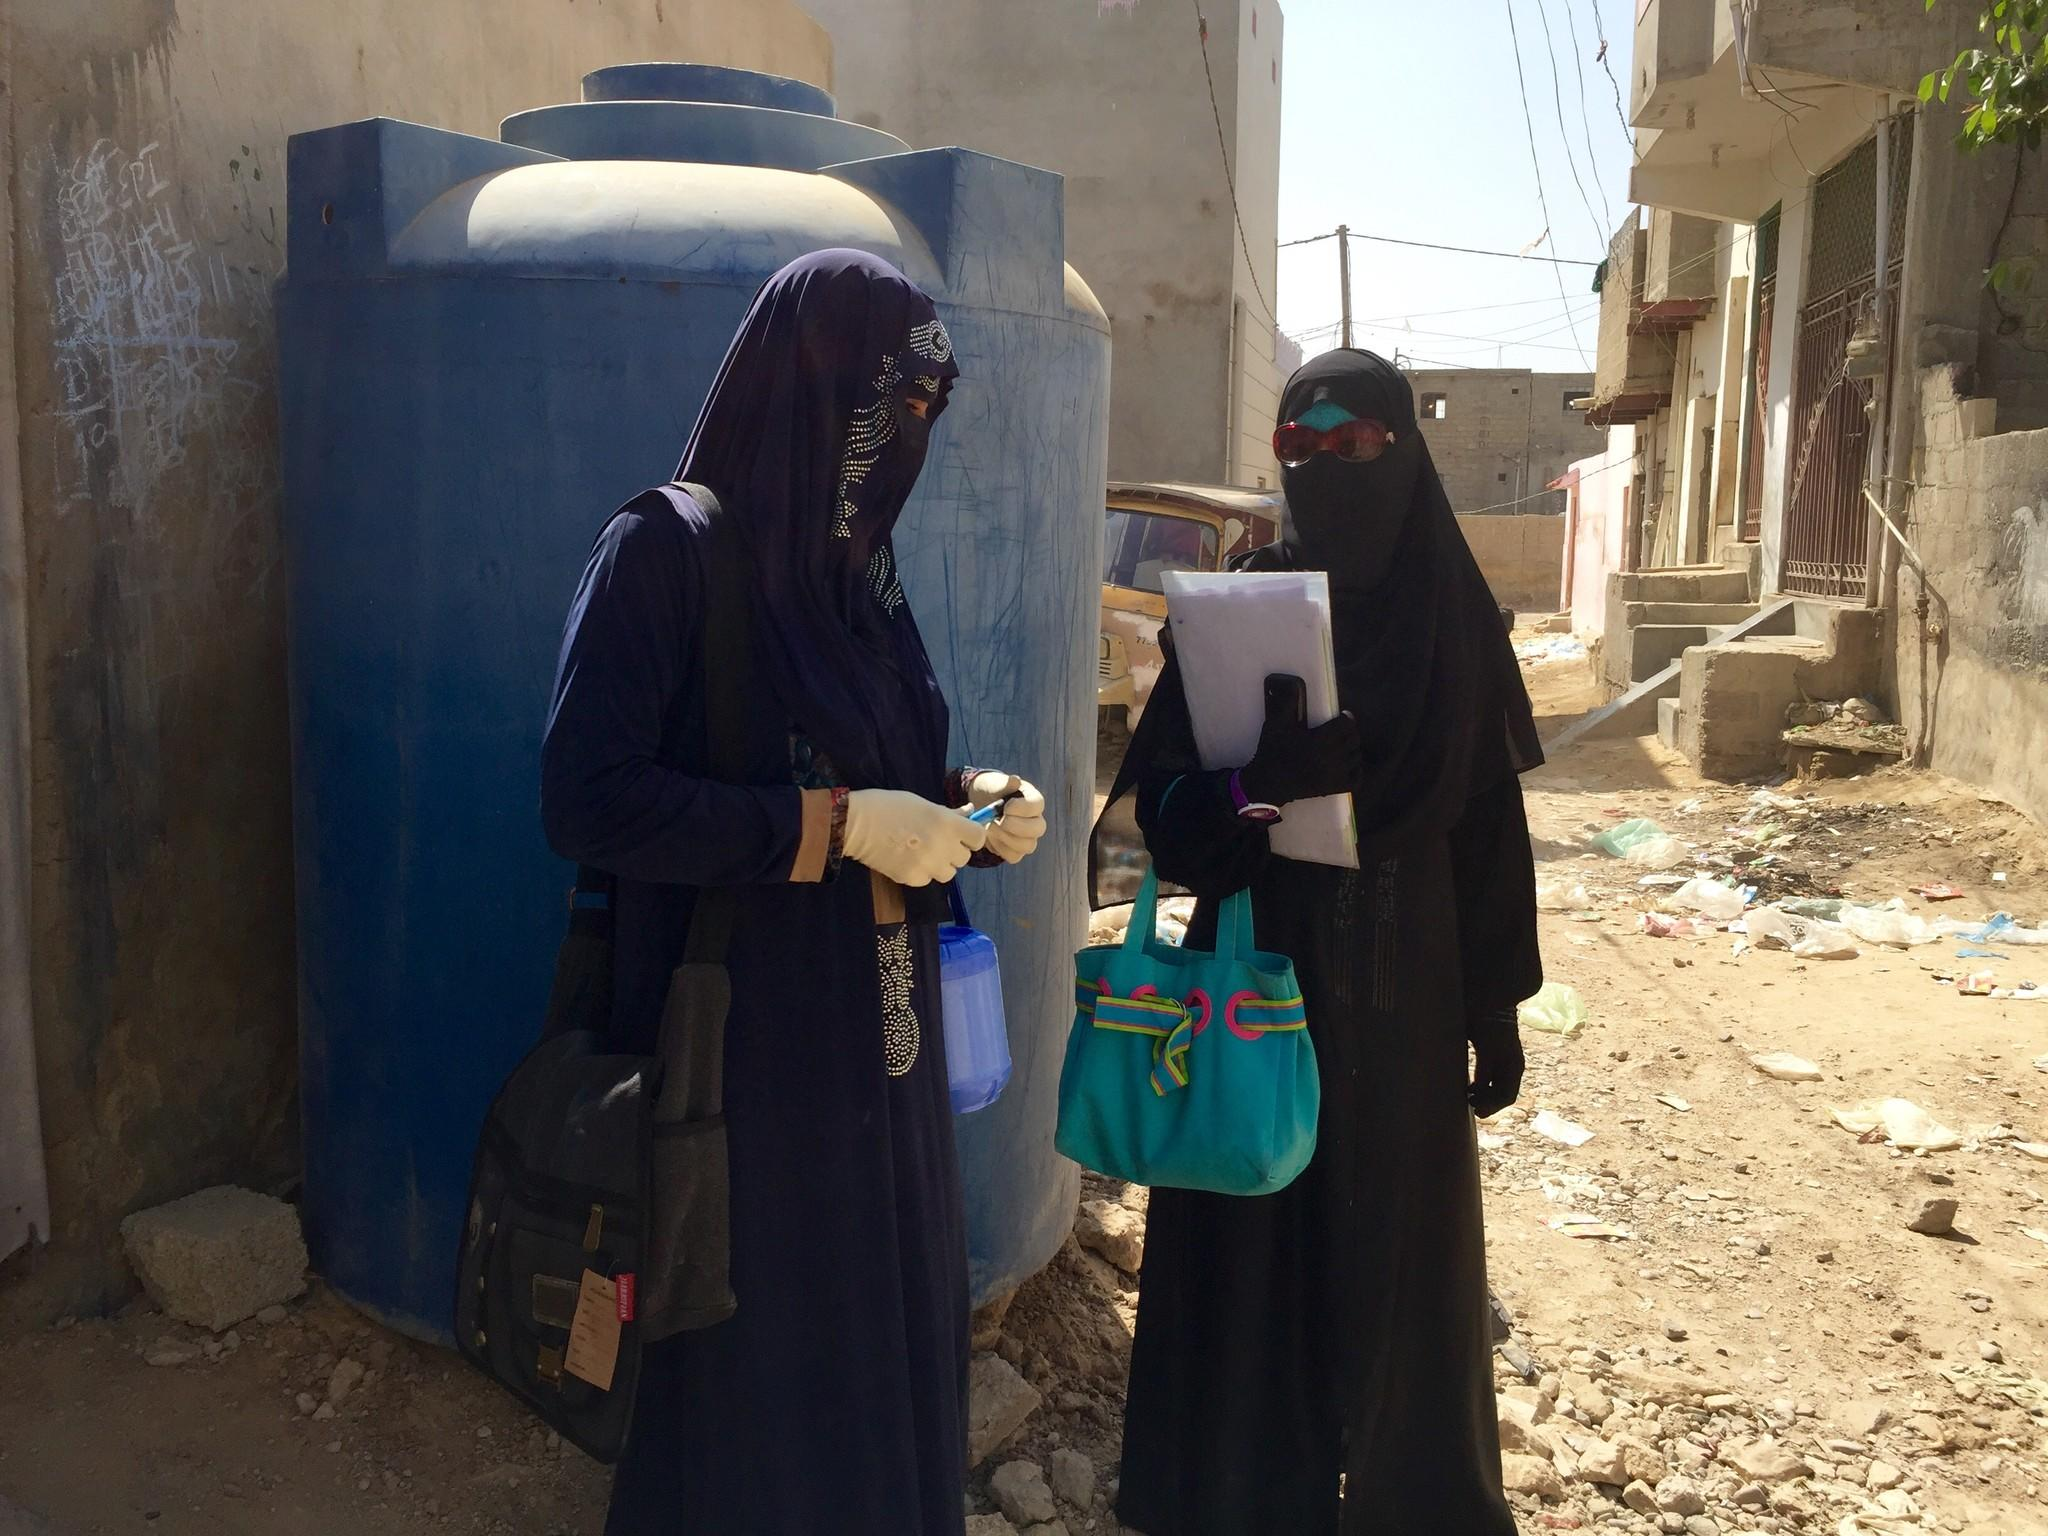 Saira Nizamuddin, right, confers with a fellow polio vaccinator.